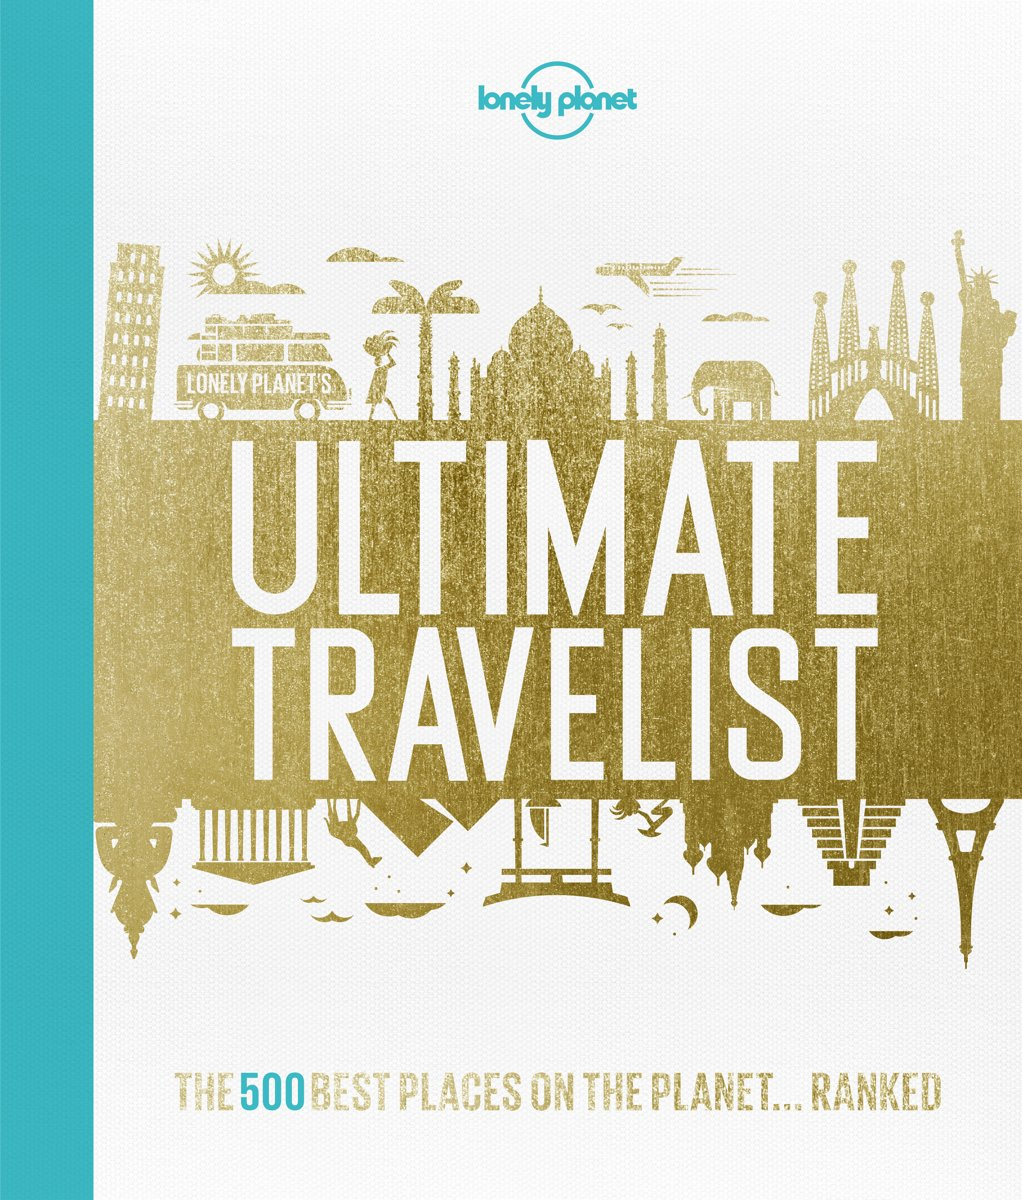 be96b52282c bol.com | Lonely Planet's Ultimate Travelist, Lonely Planet ...